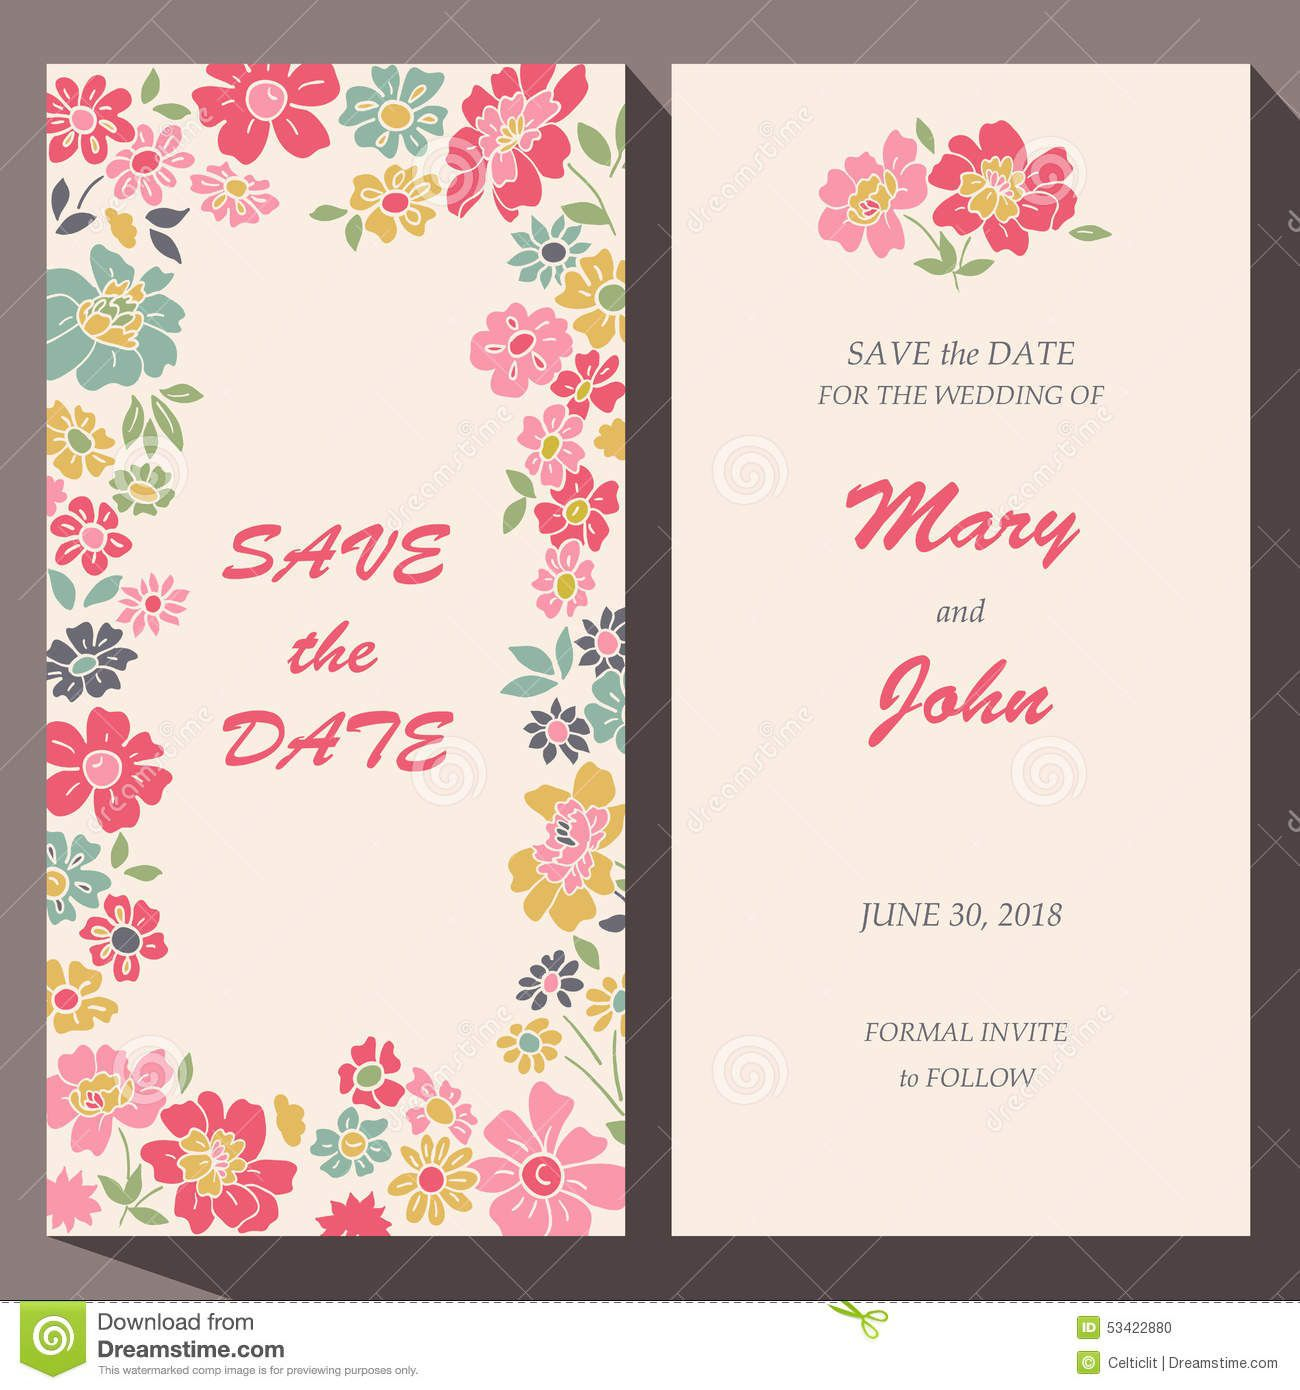 009 Awful Save The Date Birthday Card Template Design  Free PrintableFull